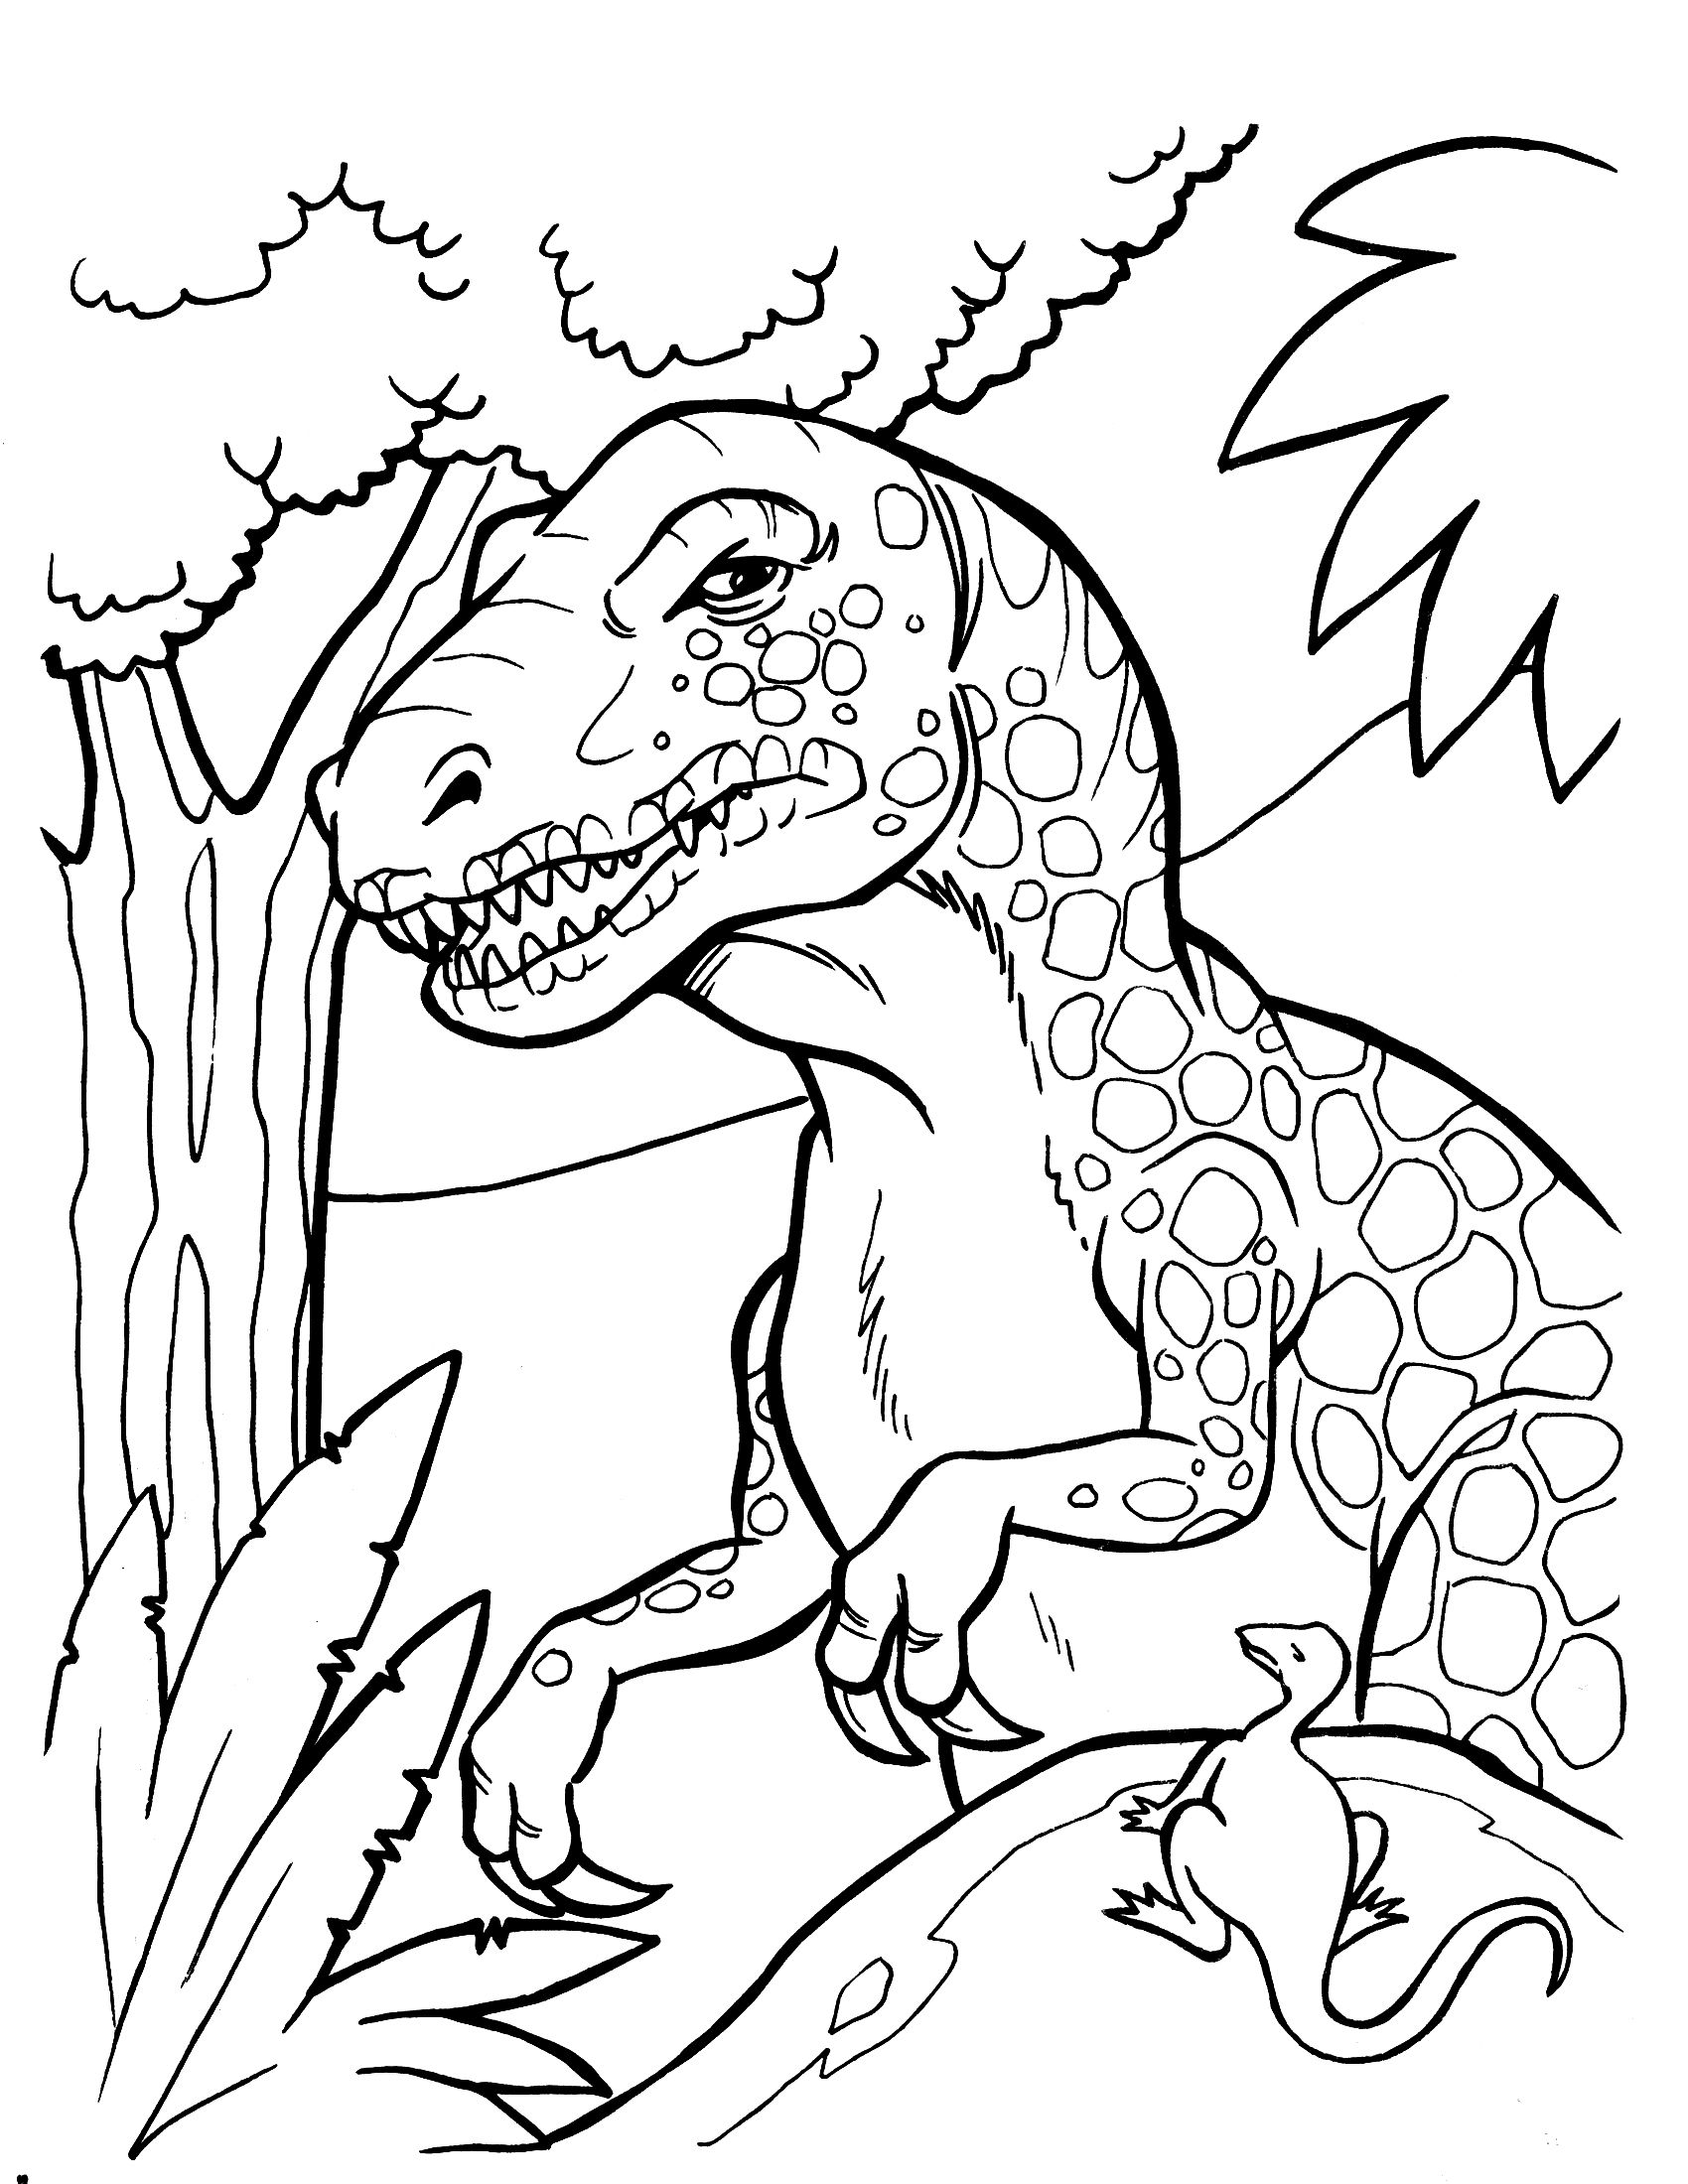 Dinosaur coloring pages trex - Free Printable Dinosaur Coloring Pages